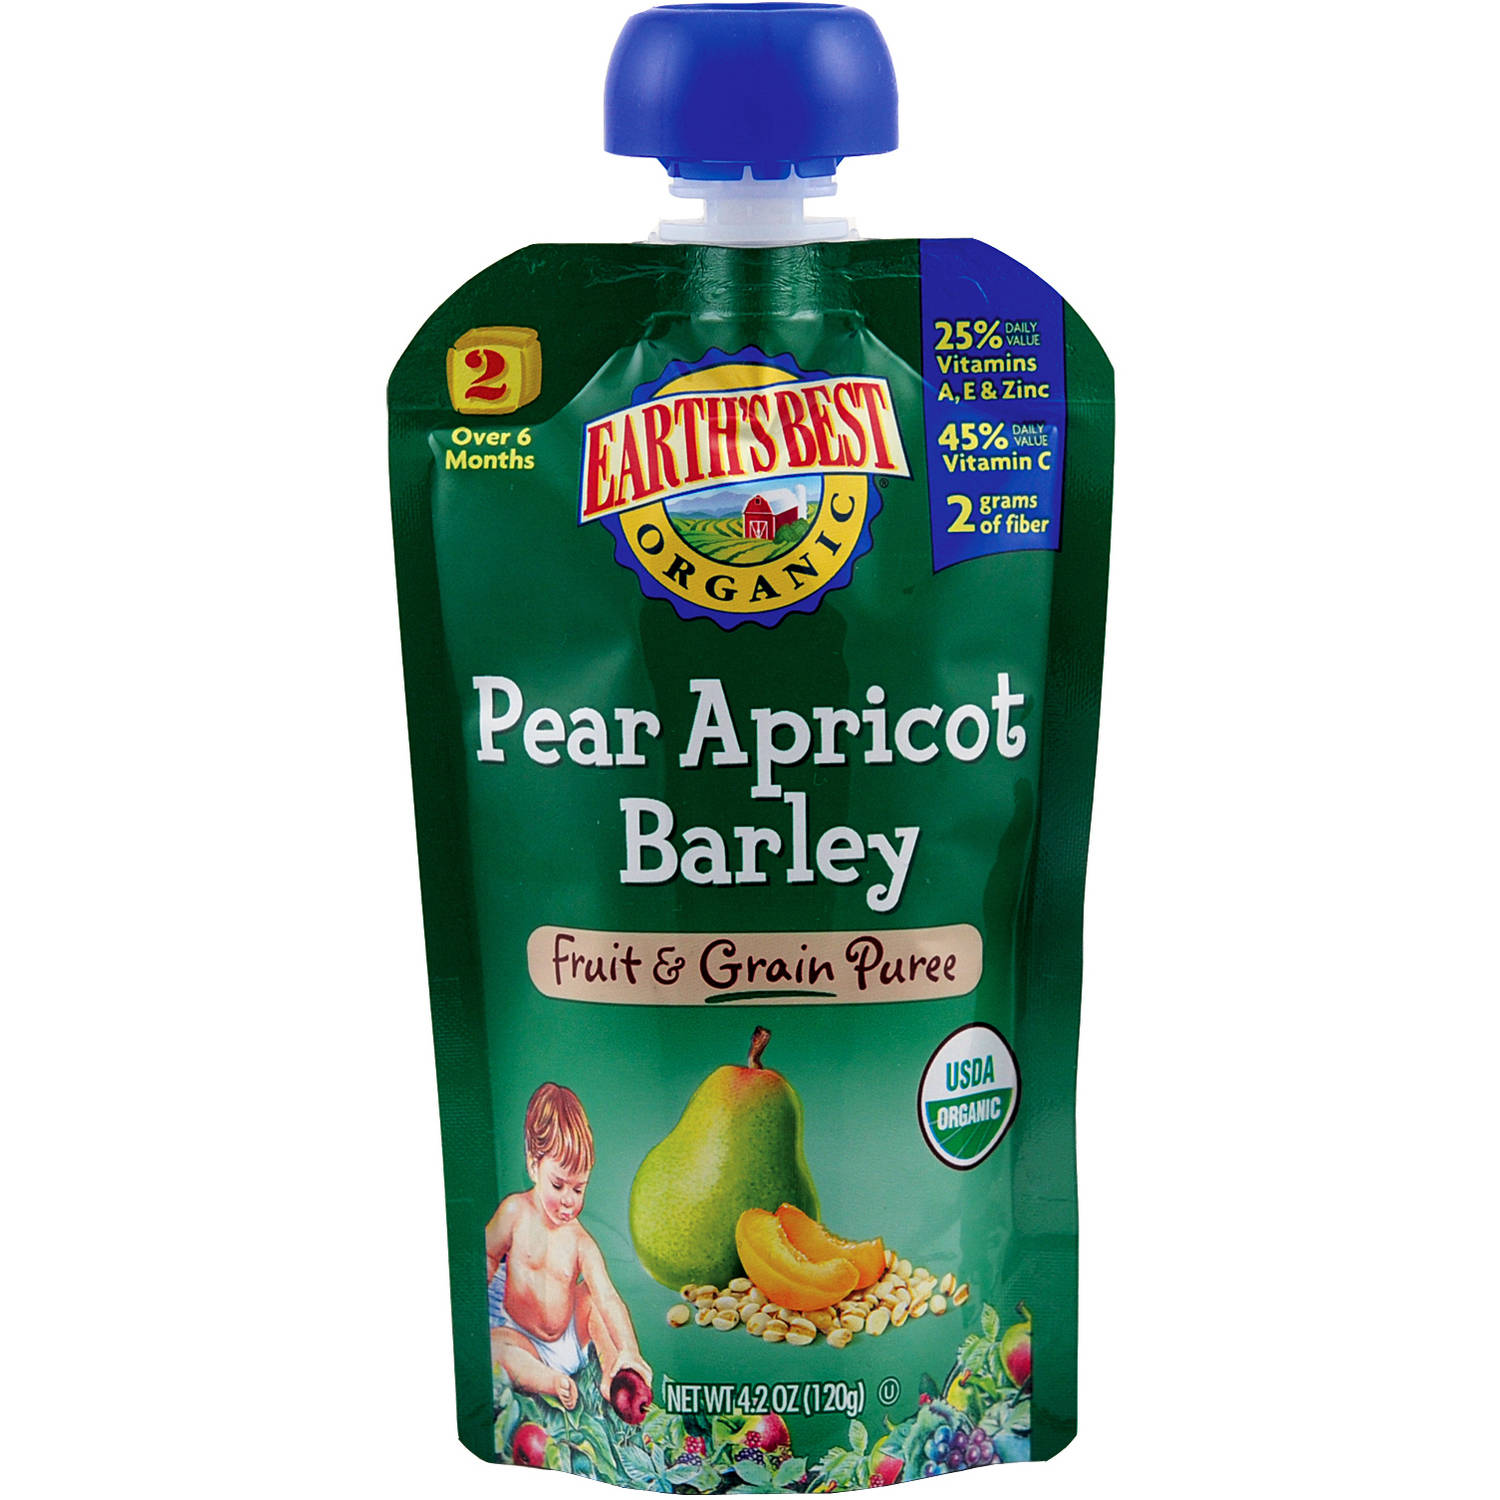 Earth's Best Organic Pear Apricot Barley Fruit & Grain Puree, 4.2 oz, (Pack of 6)